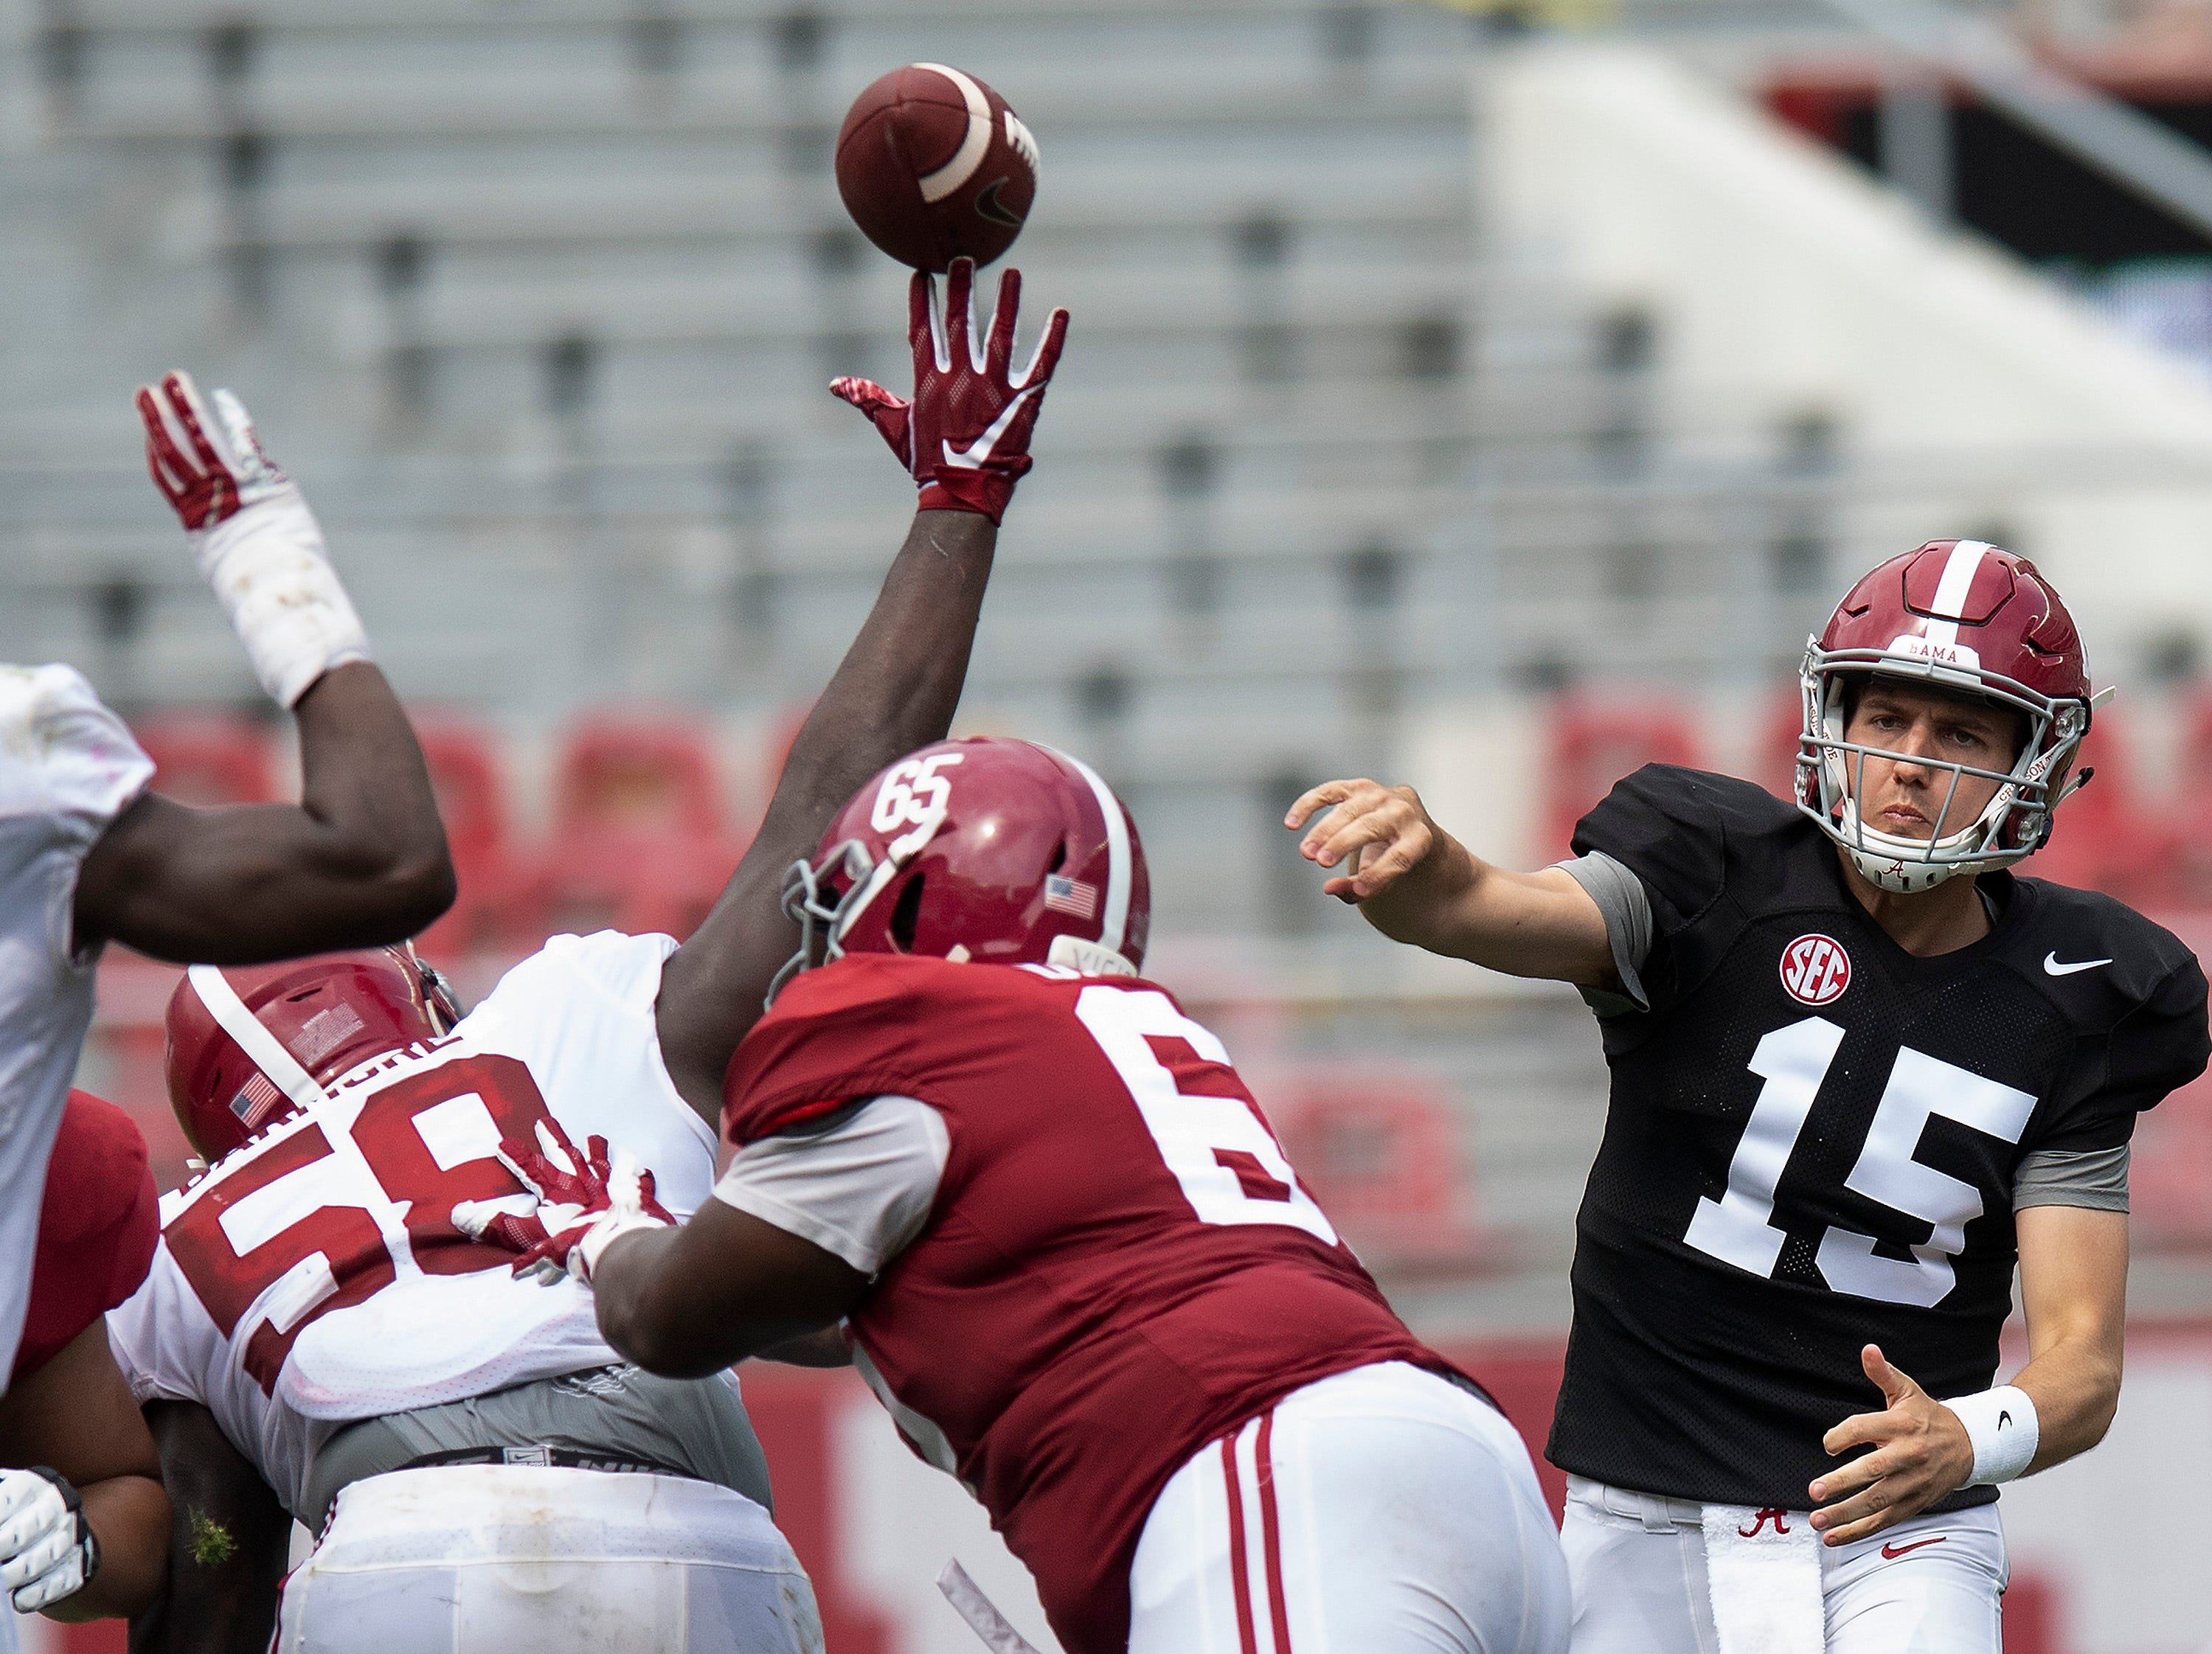 A pass by quarterback Paul Tyson (15)  is tipped by defensive lineman Christian Barmore (58) during second half action in the Alabama A-Day spring football scrimmage game at Bryant Denny Stadium in Tuscaloosa, Ala., on Saturday April 13, 2019.